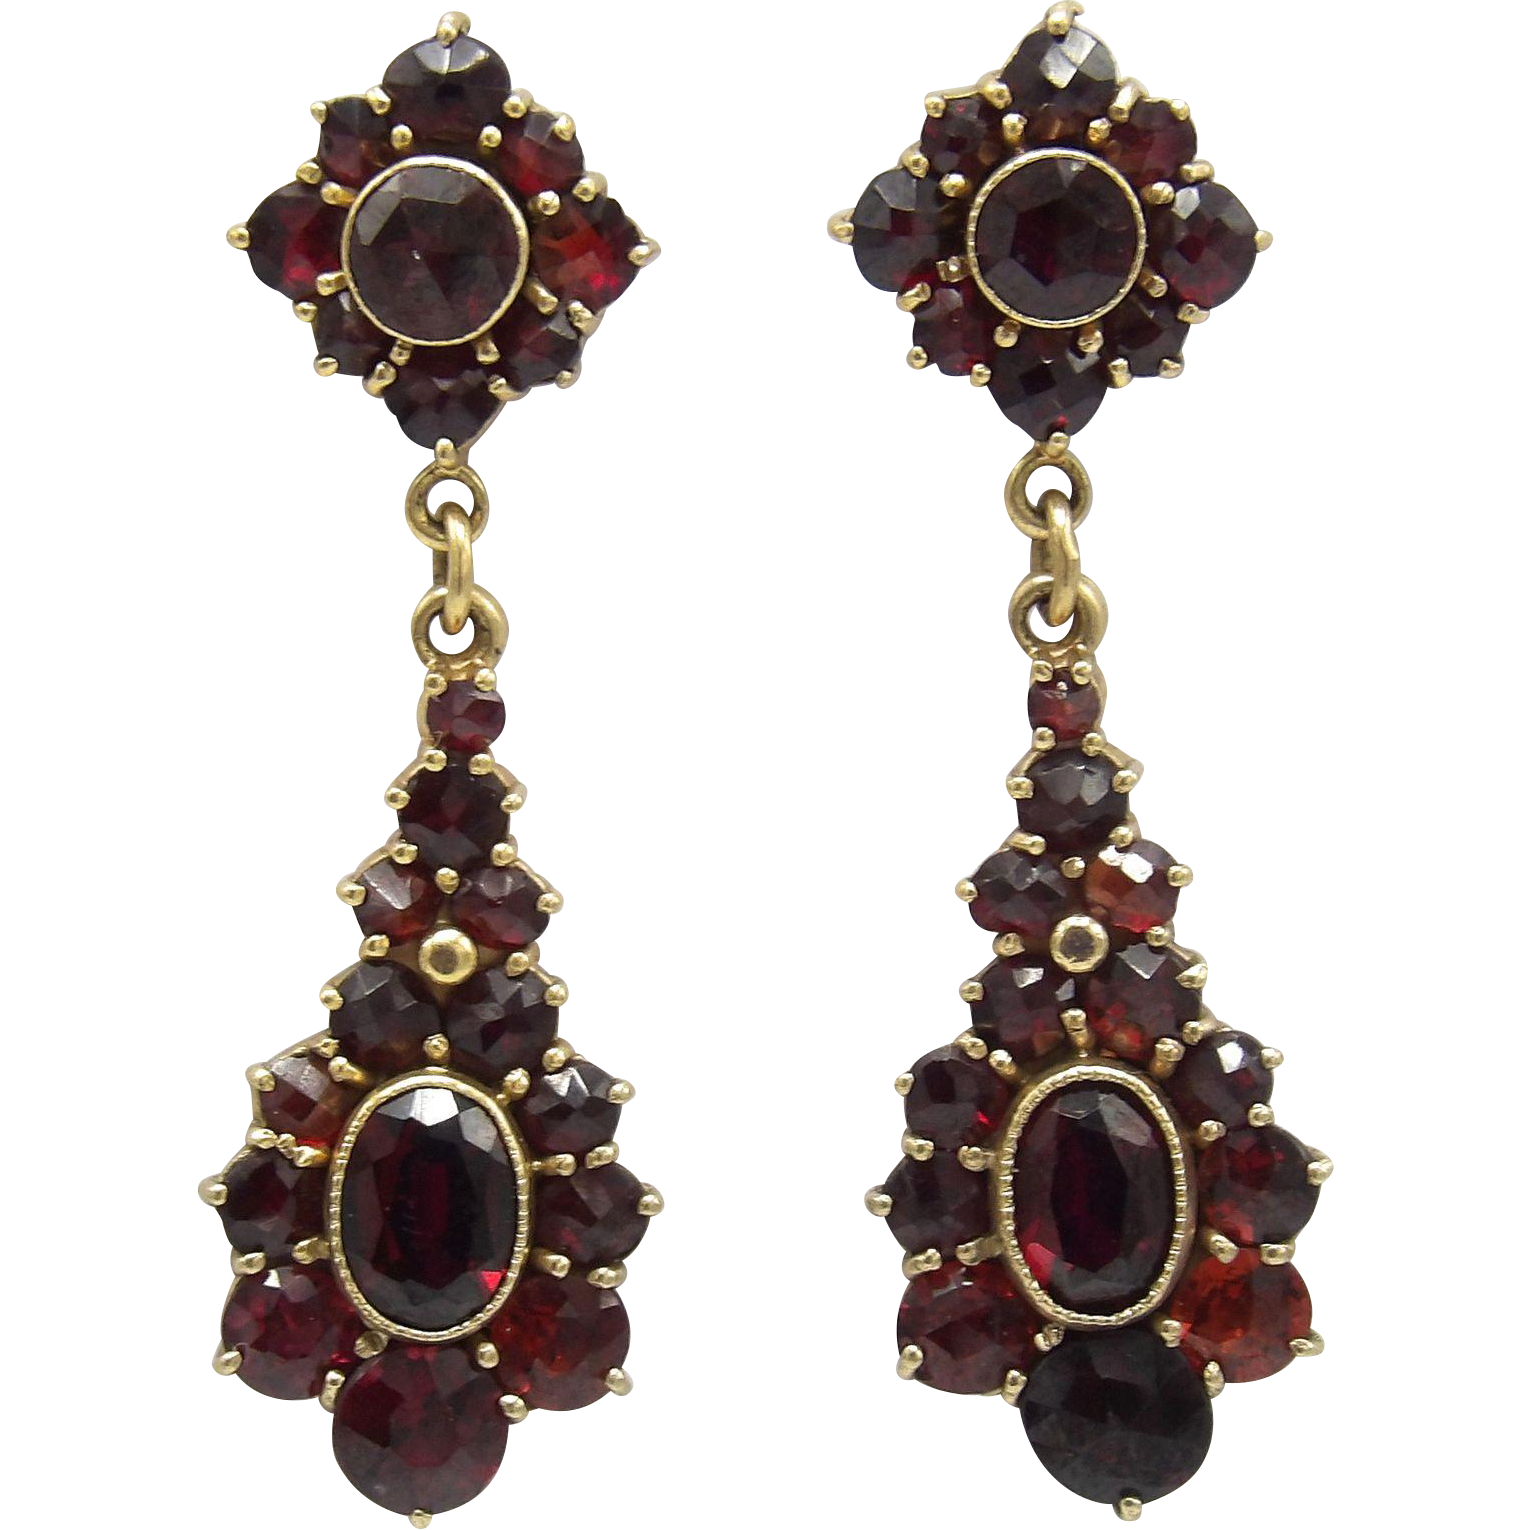 14 K Gold Bohemian Garnet Earrings Found At Rubylane Vintagebeginshere Christmas